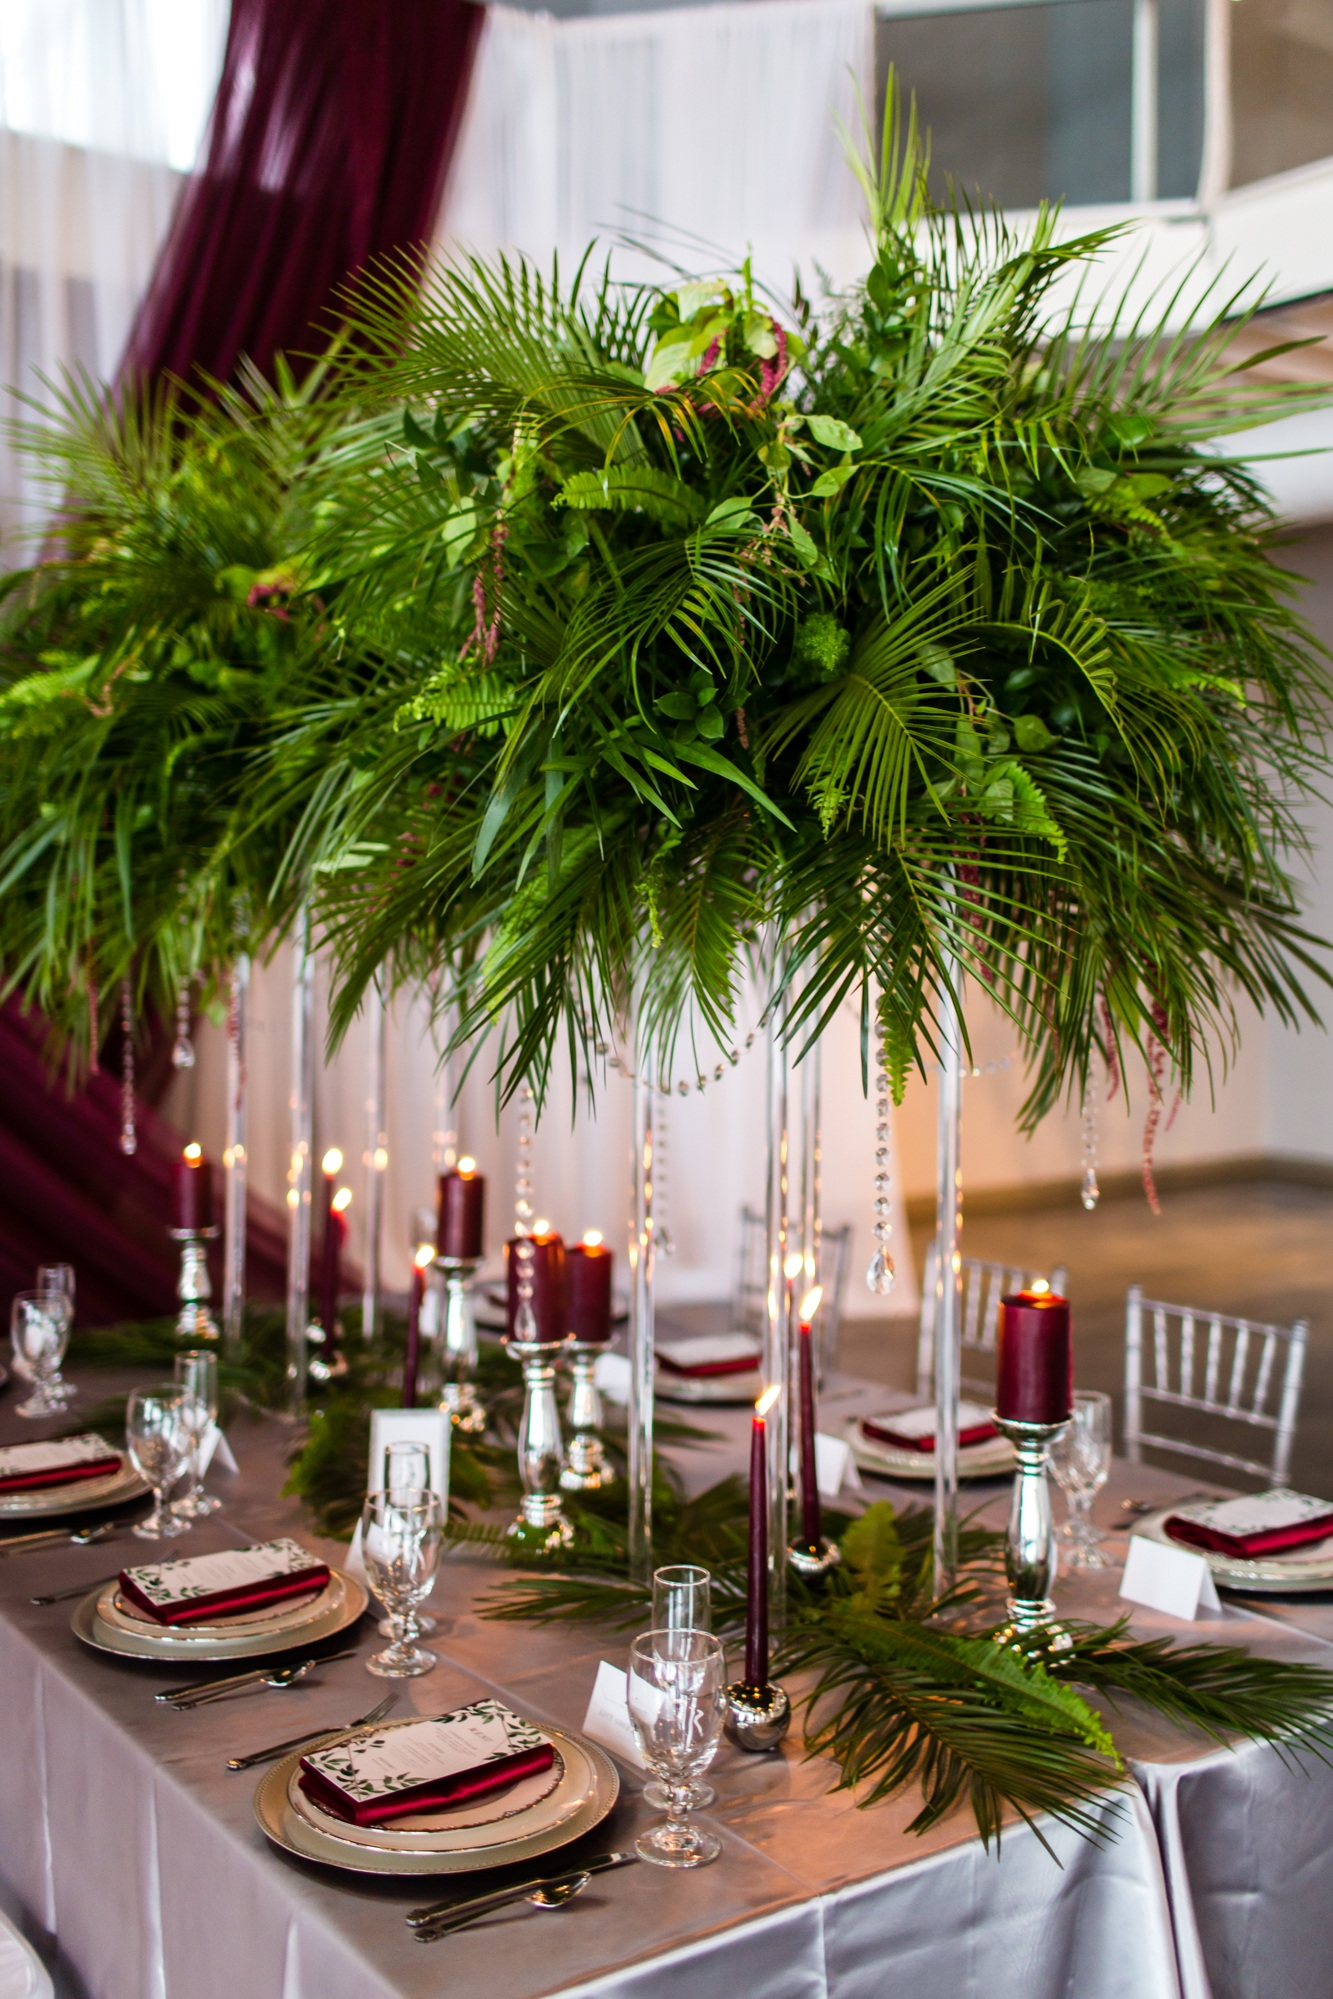 silver satin table linens with fern greenery and burgundy candles